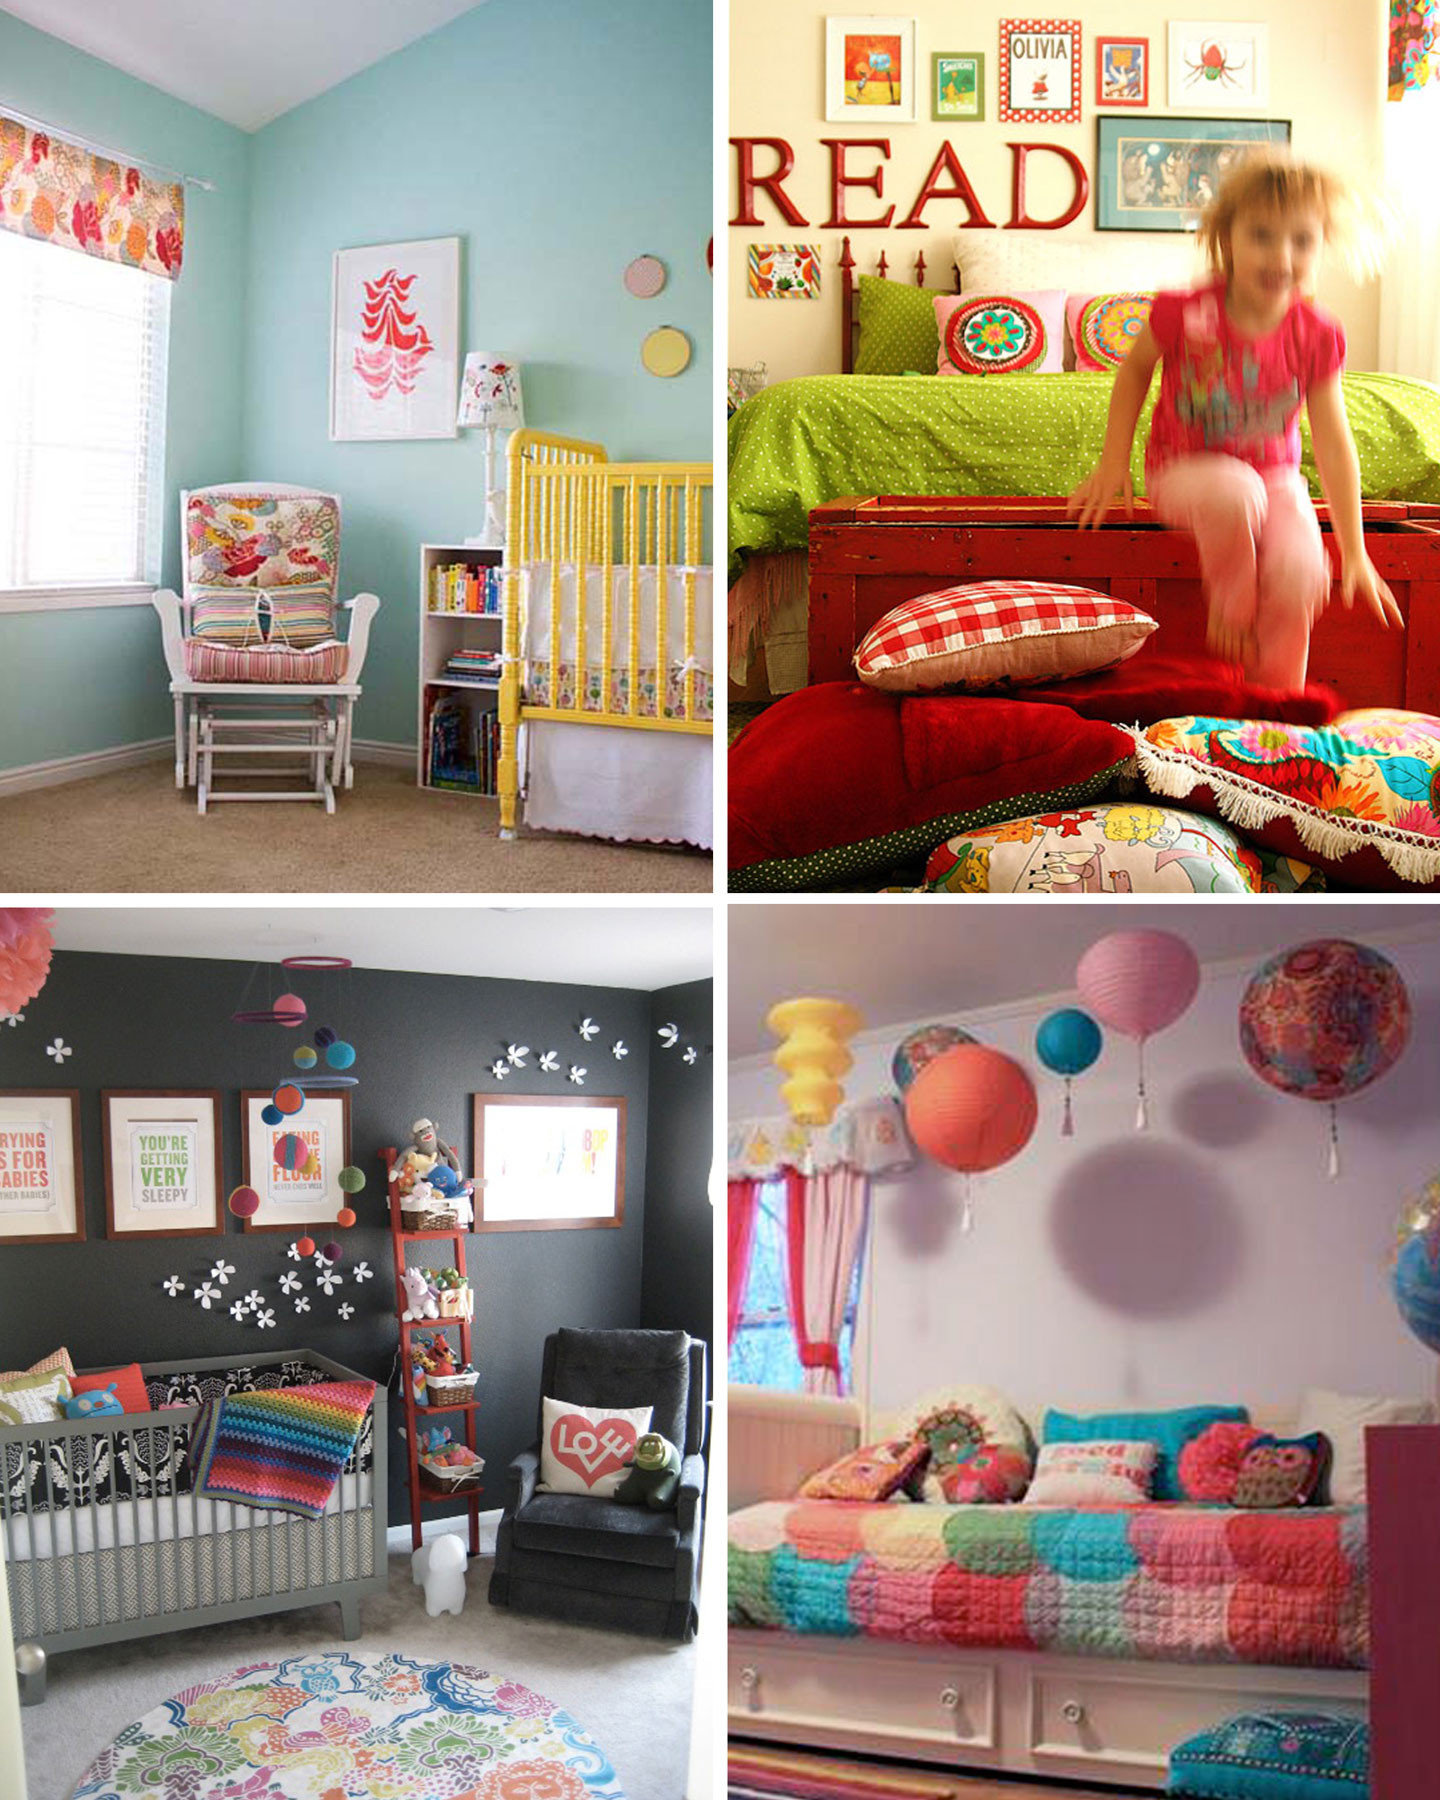 Best ideas about DIY Kids Rooms . Save or Pin DIY Friday Kids Room Inspiration Now.